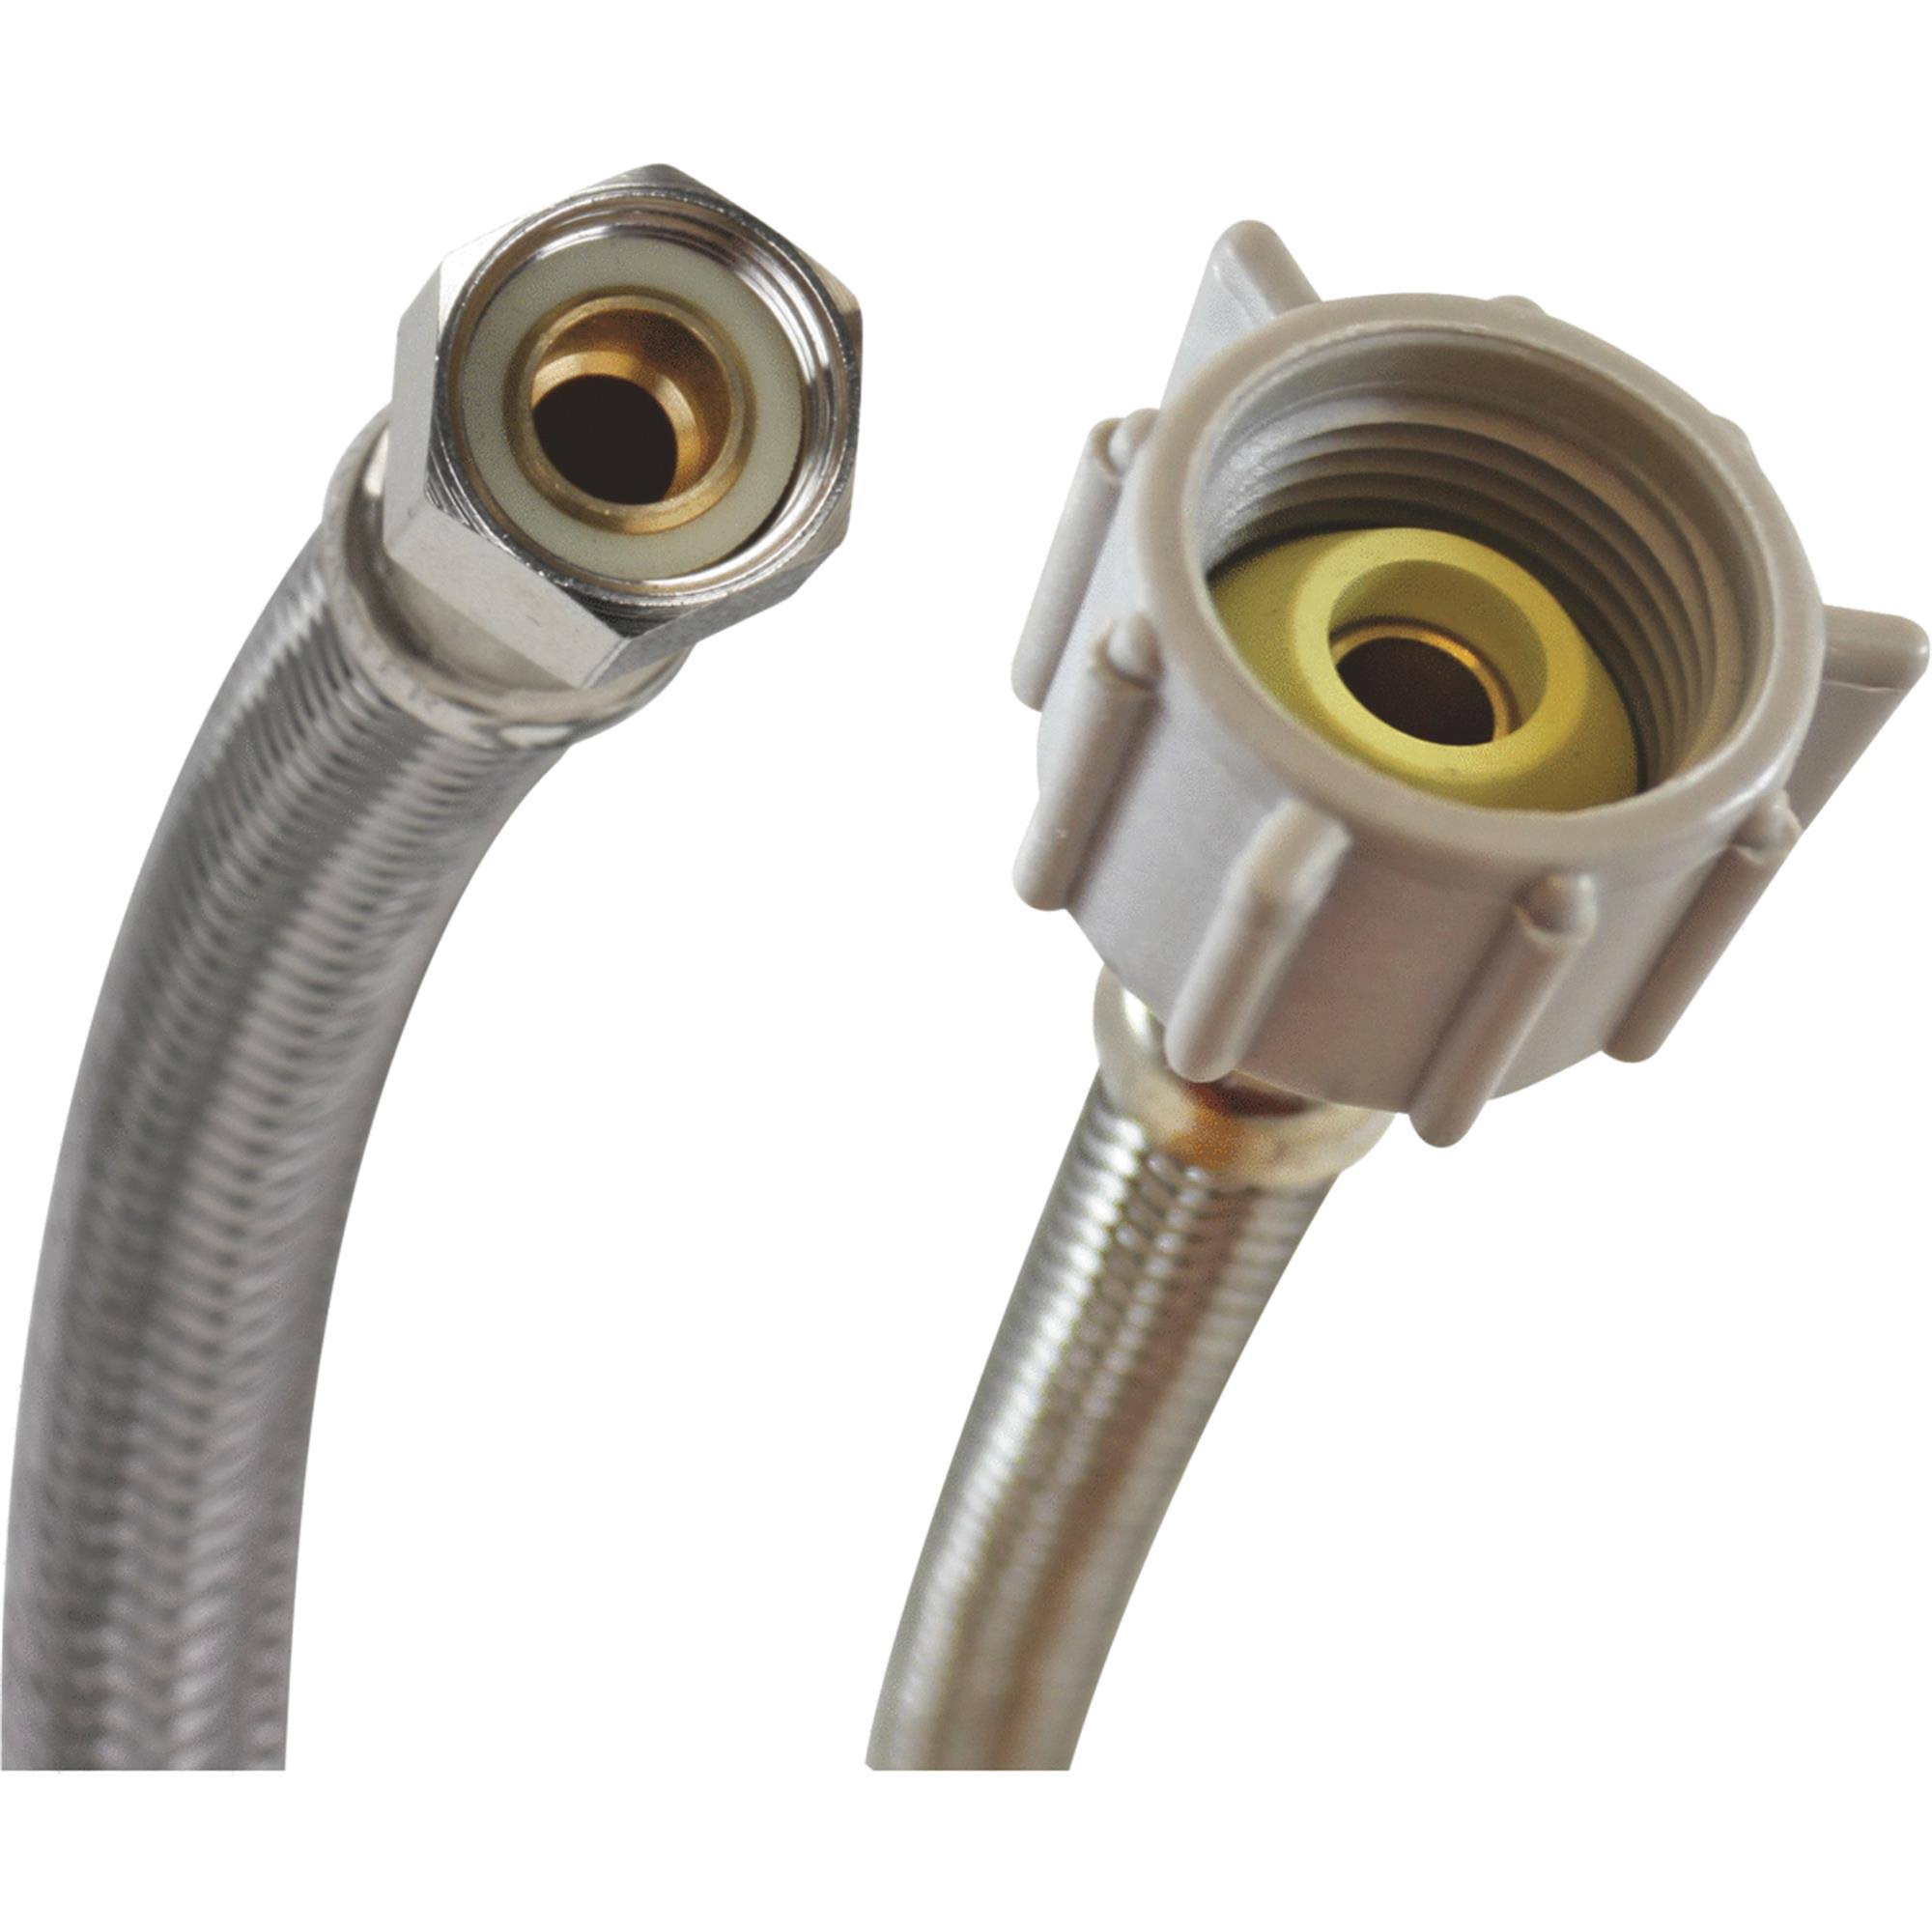 "Fluidmaster B1T16 Braided Stainless Steel Toilet Connectors - 3/8"" x 7/16"""